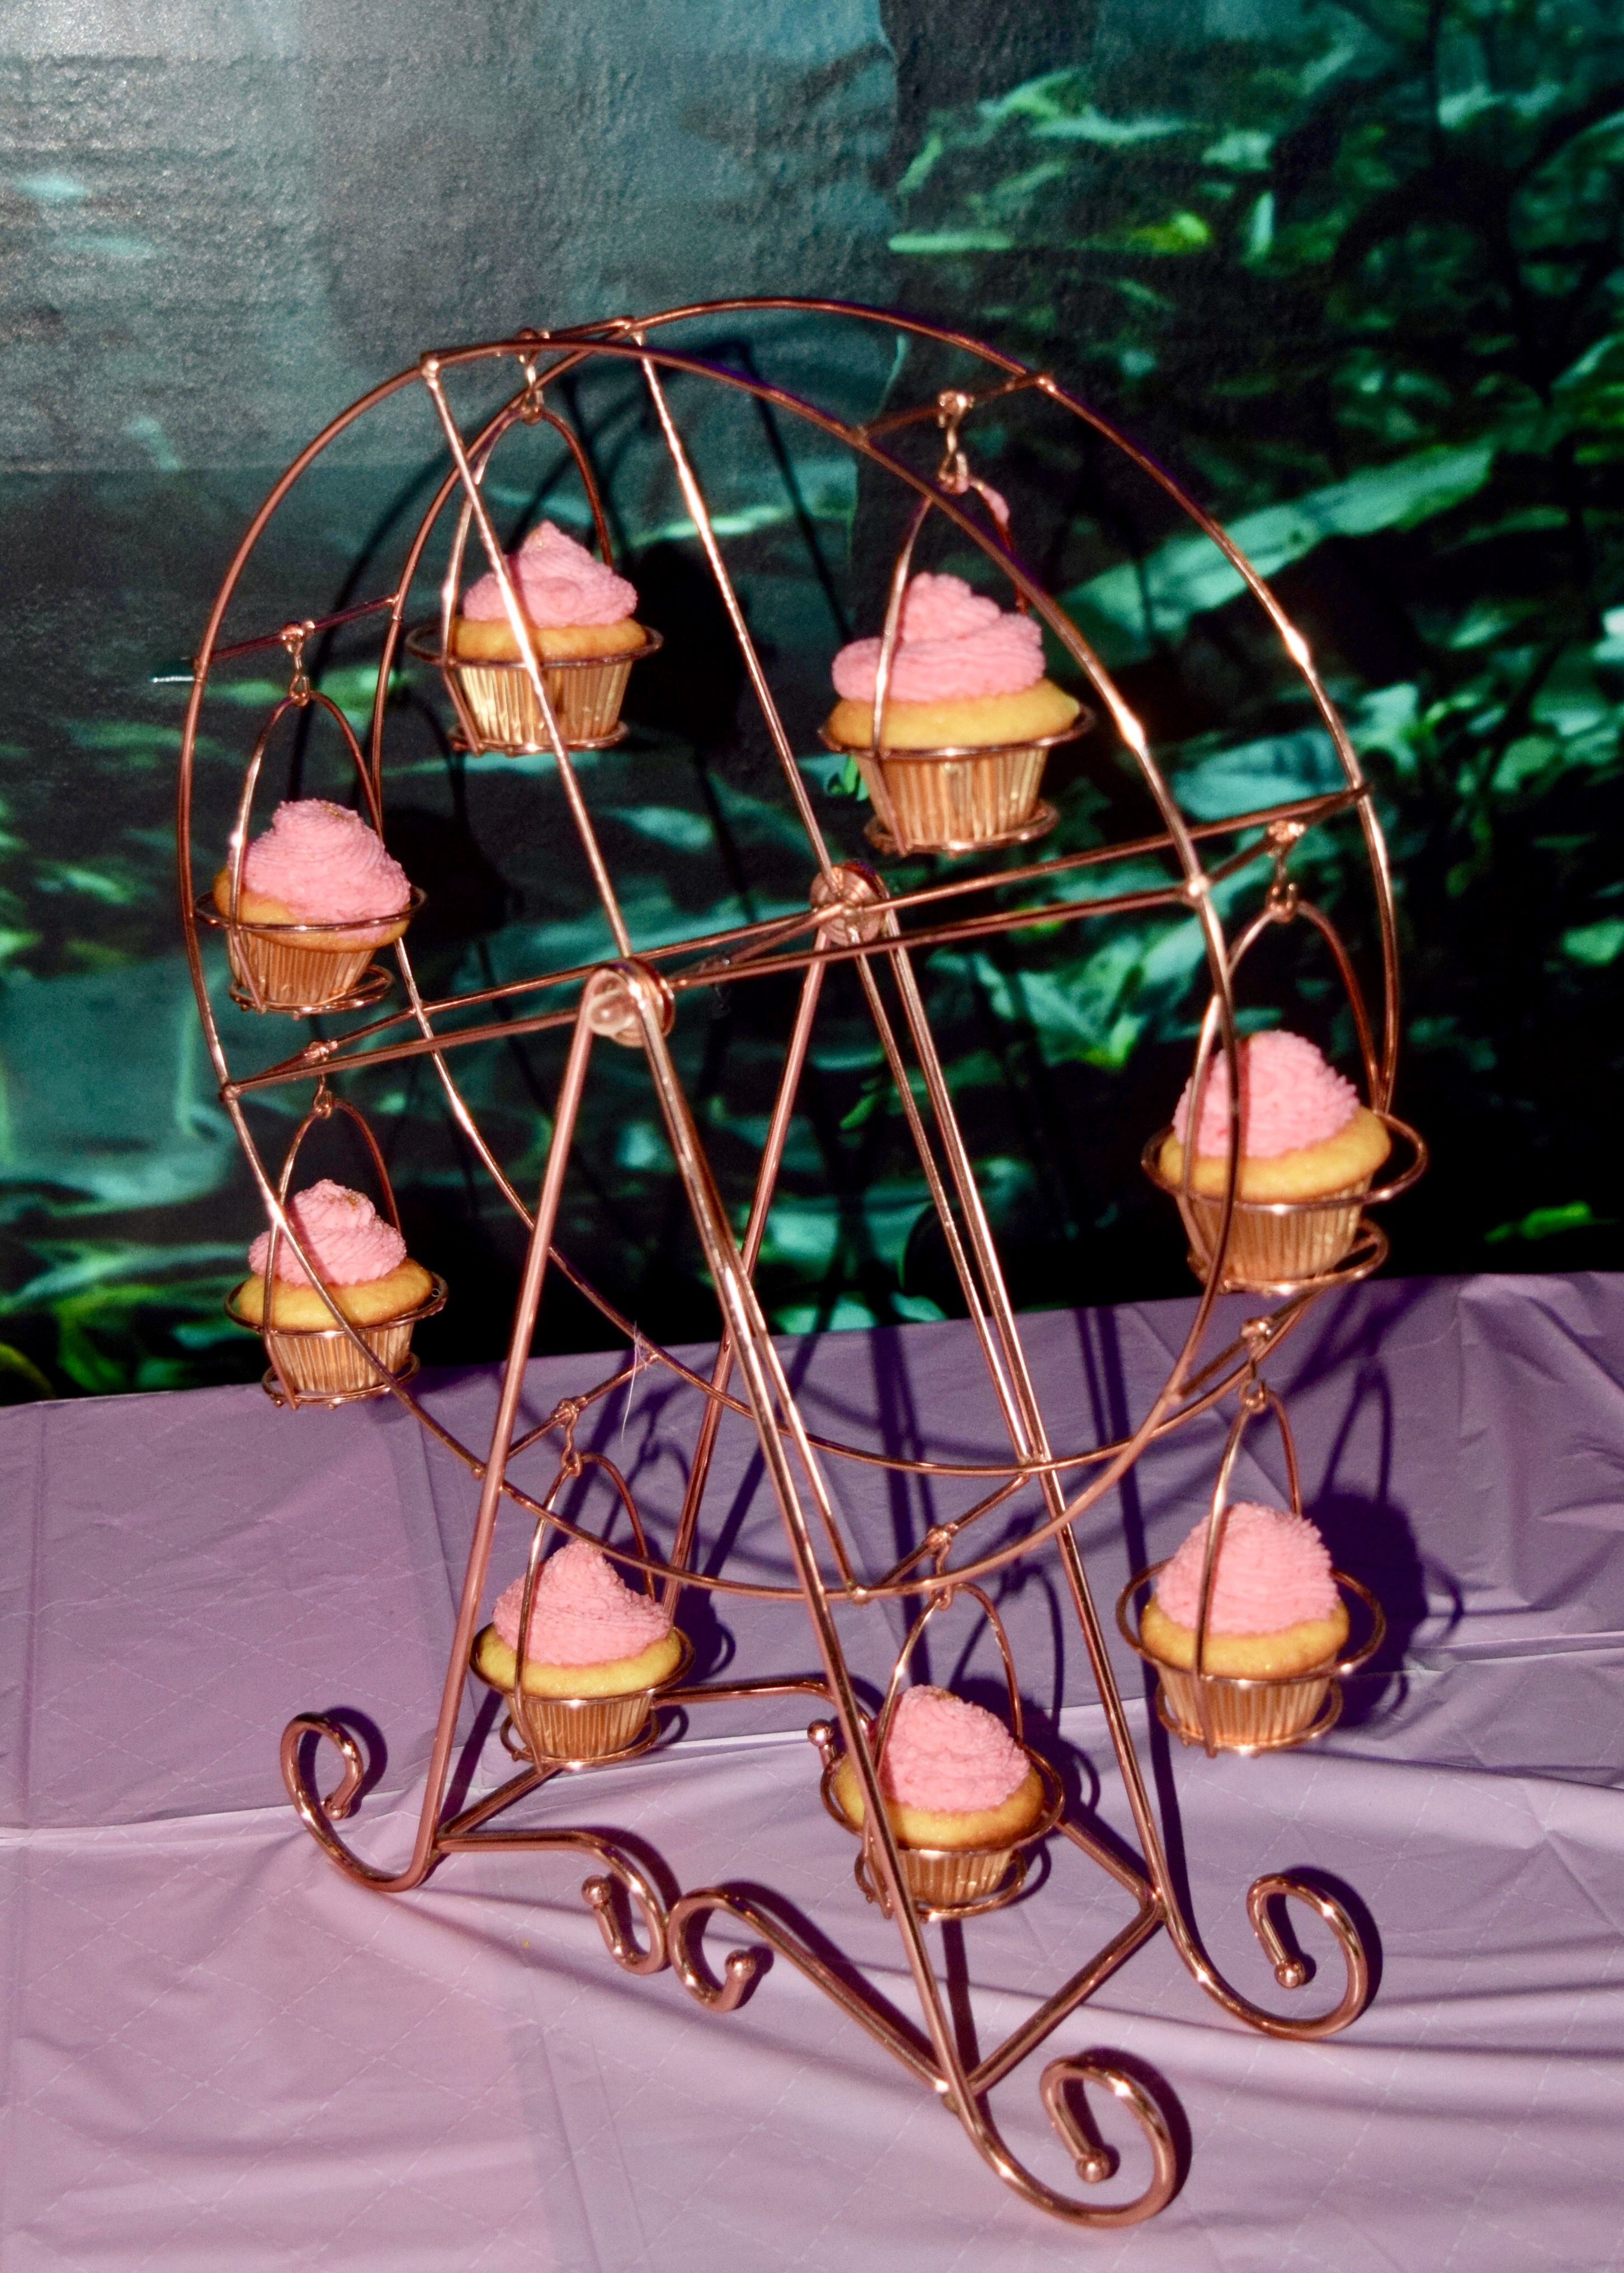 Ferris wheel of mini cupcakes. Vanilla cupcakes filled with raspberries and frosted with pink lemonade buttercream frosting.